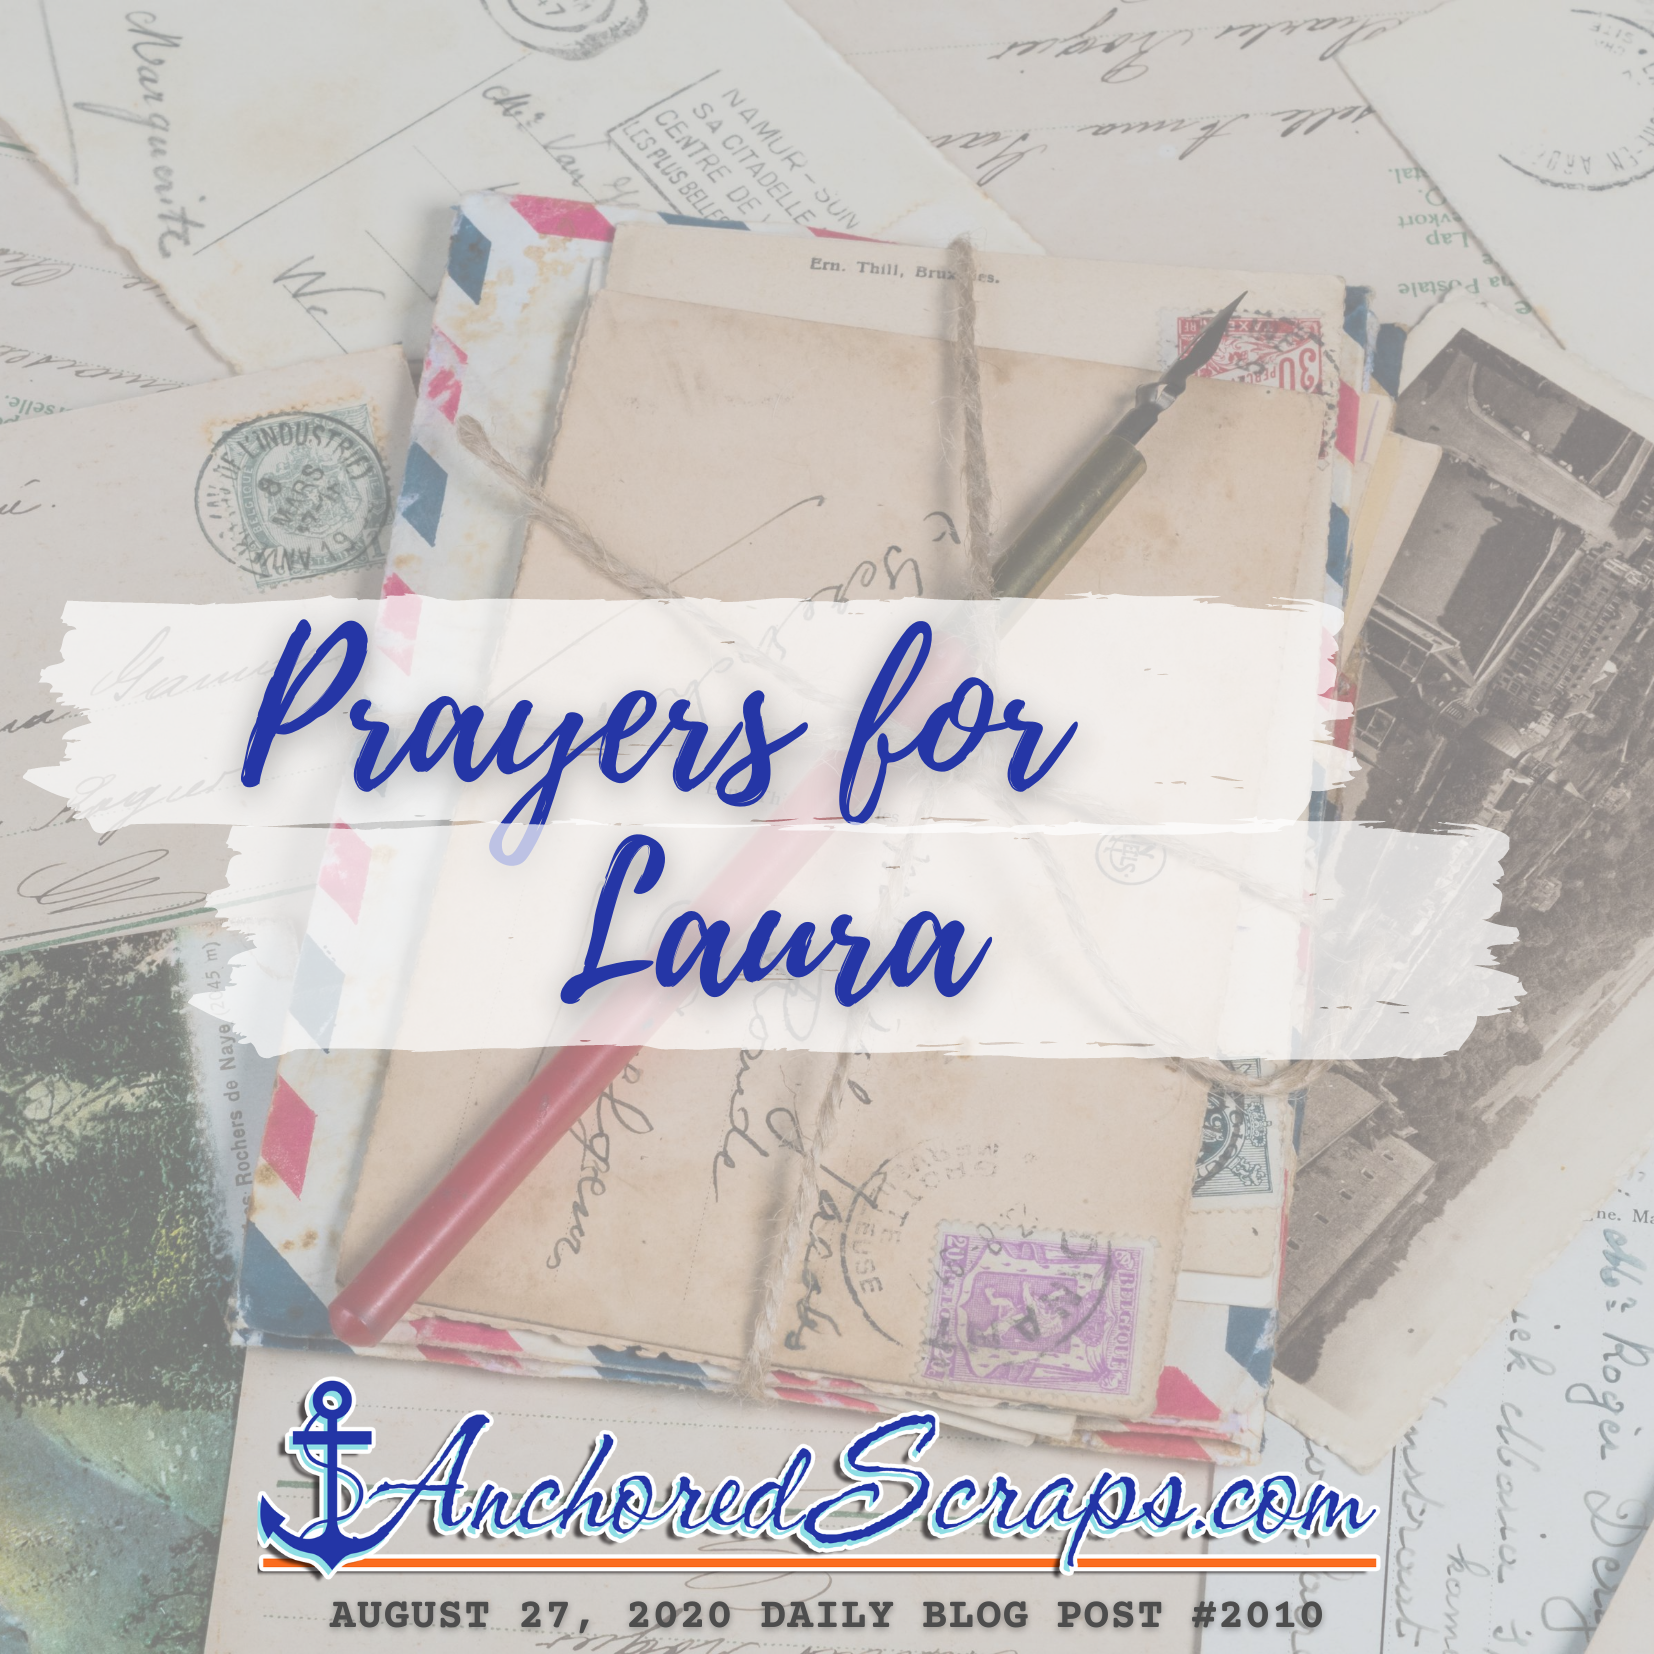 Prayers for Laura